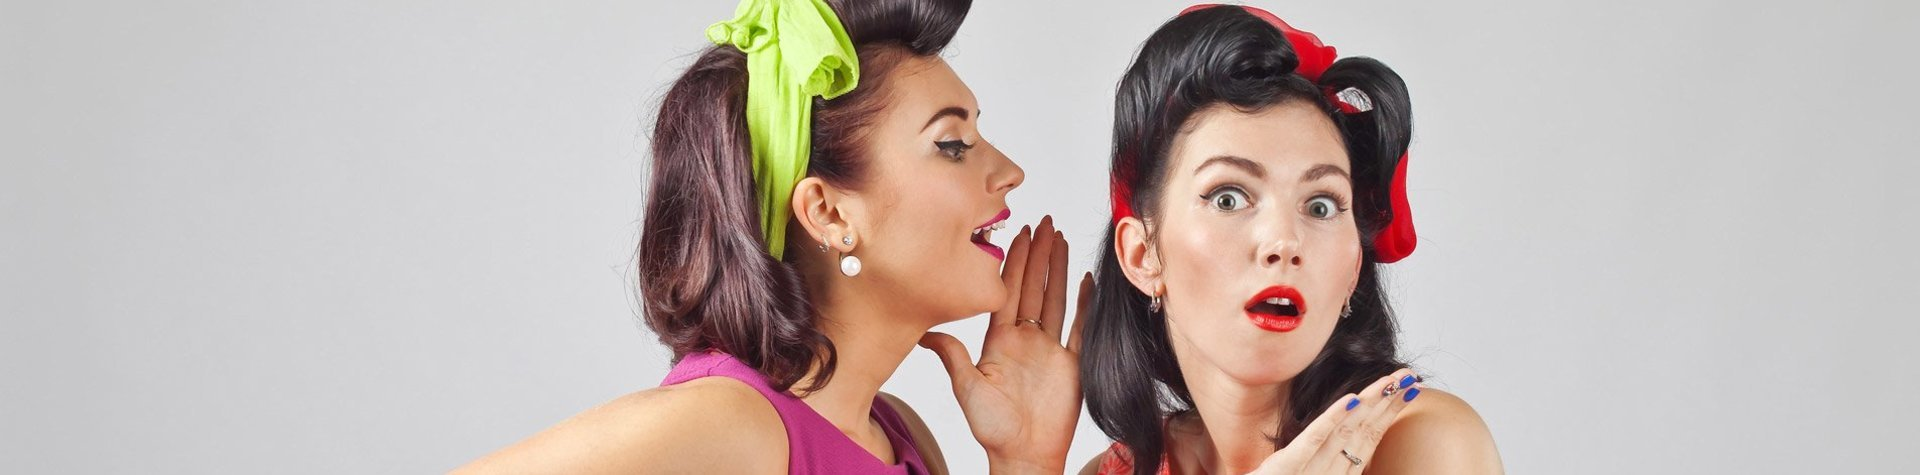 two girls styled in vintage clothing and makeup